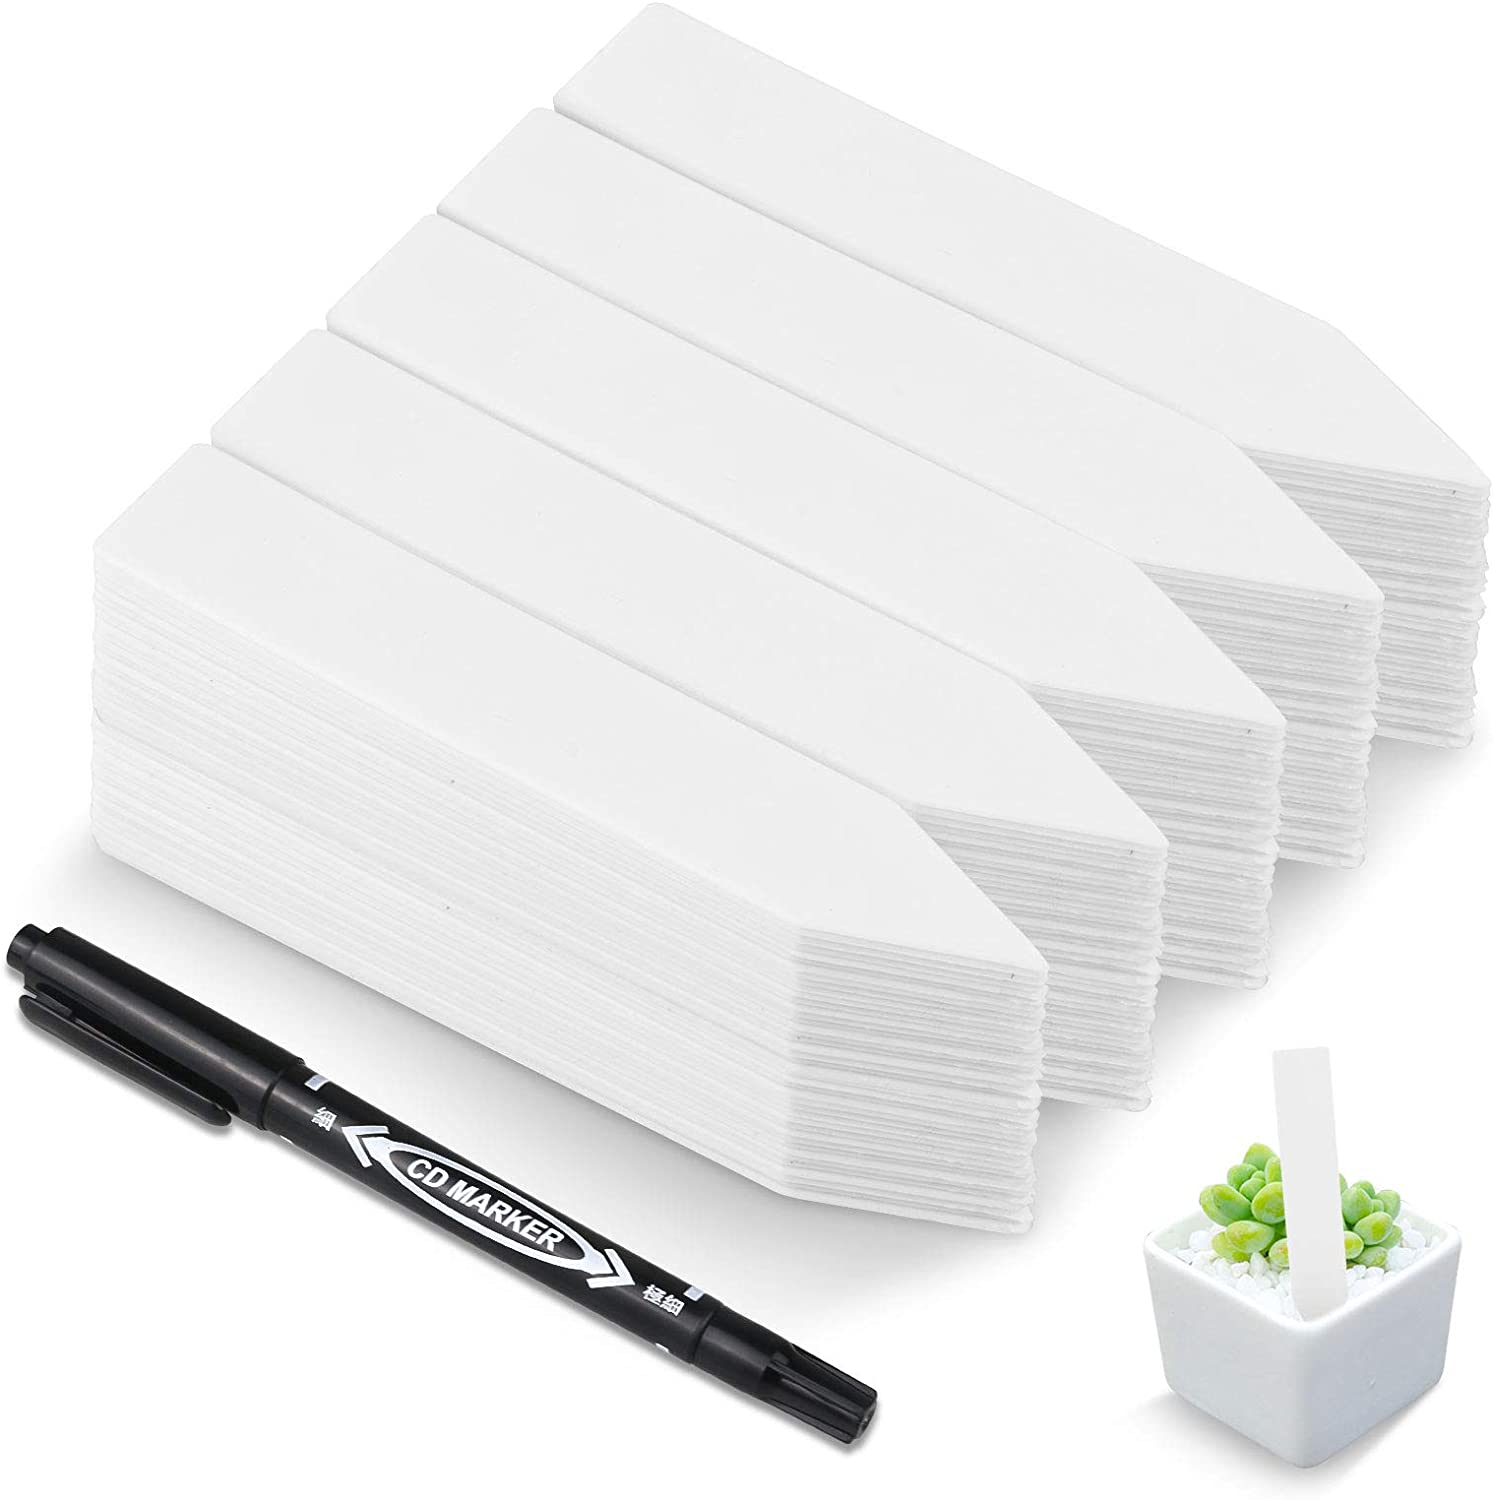 """HOMENOTE 200 Pcs 4"""" Plastic Plant Labels Waterproof Plant Tags for Seedling, Vegetable Gardening Tags with Permanet Marking Pen, White"""